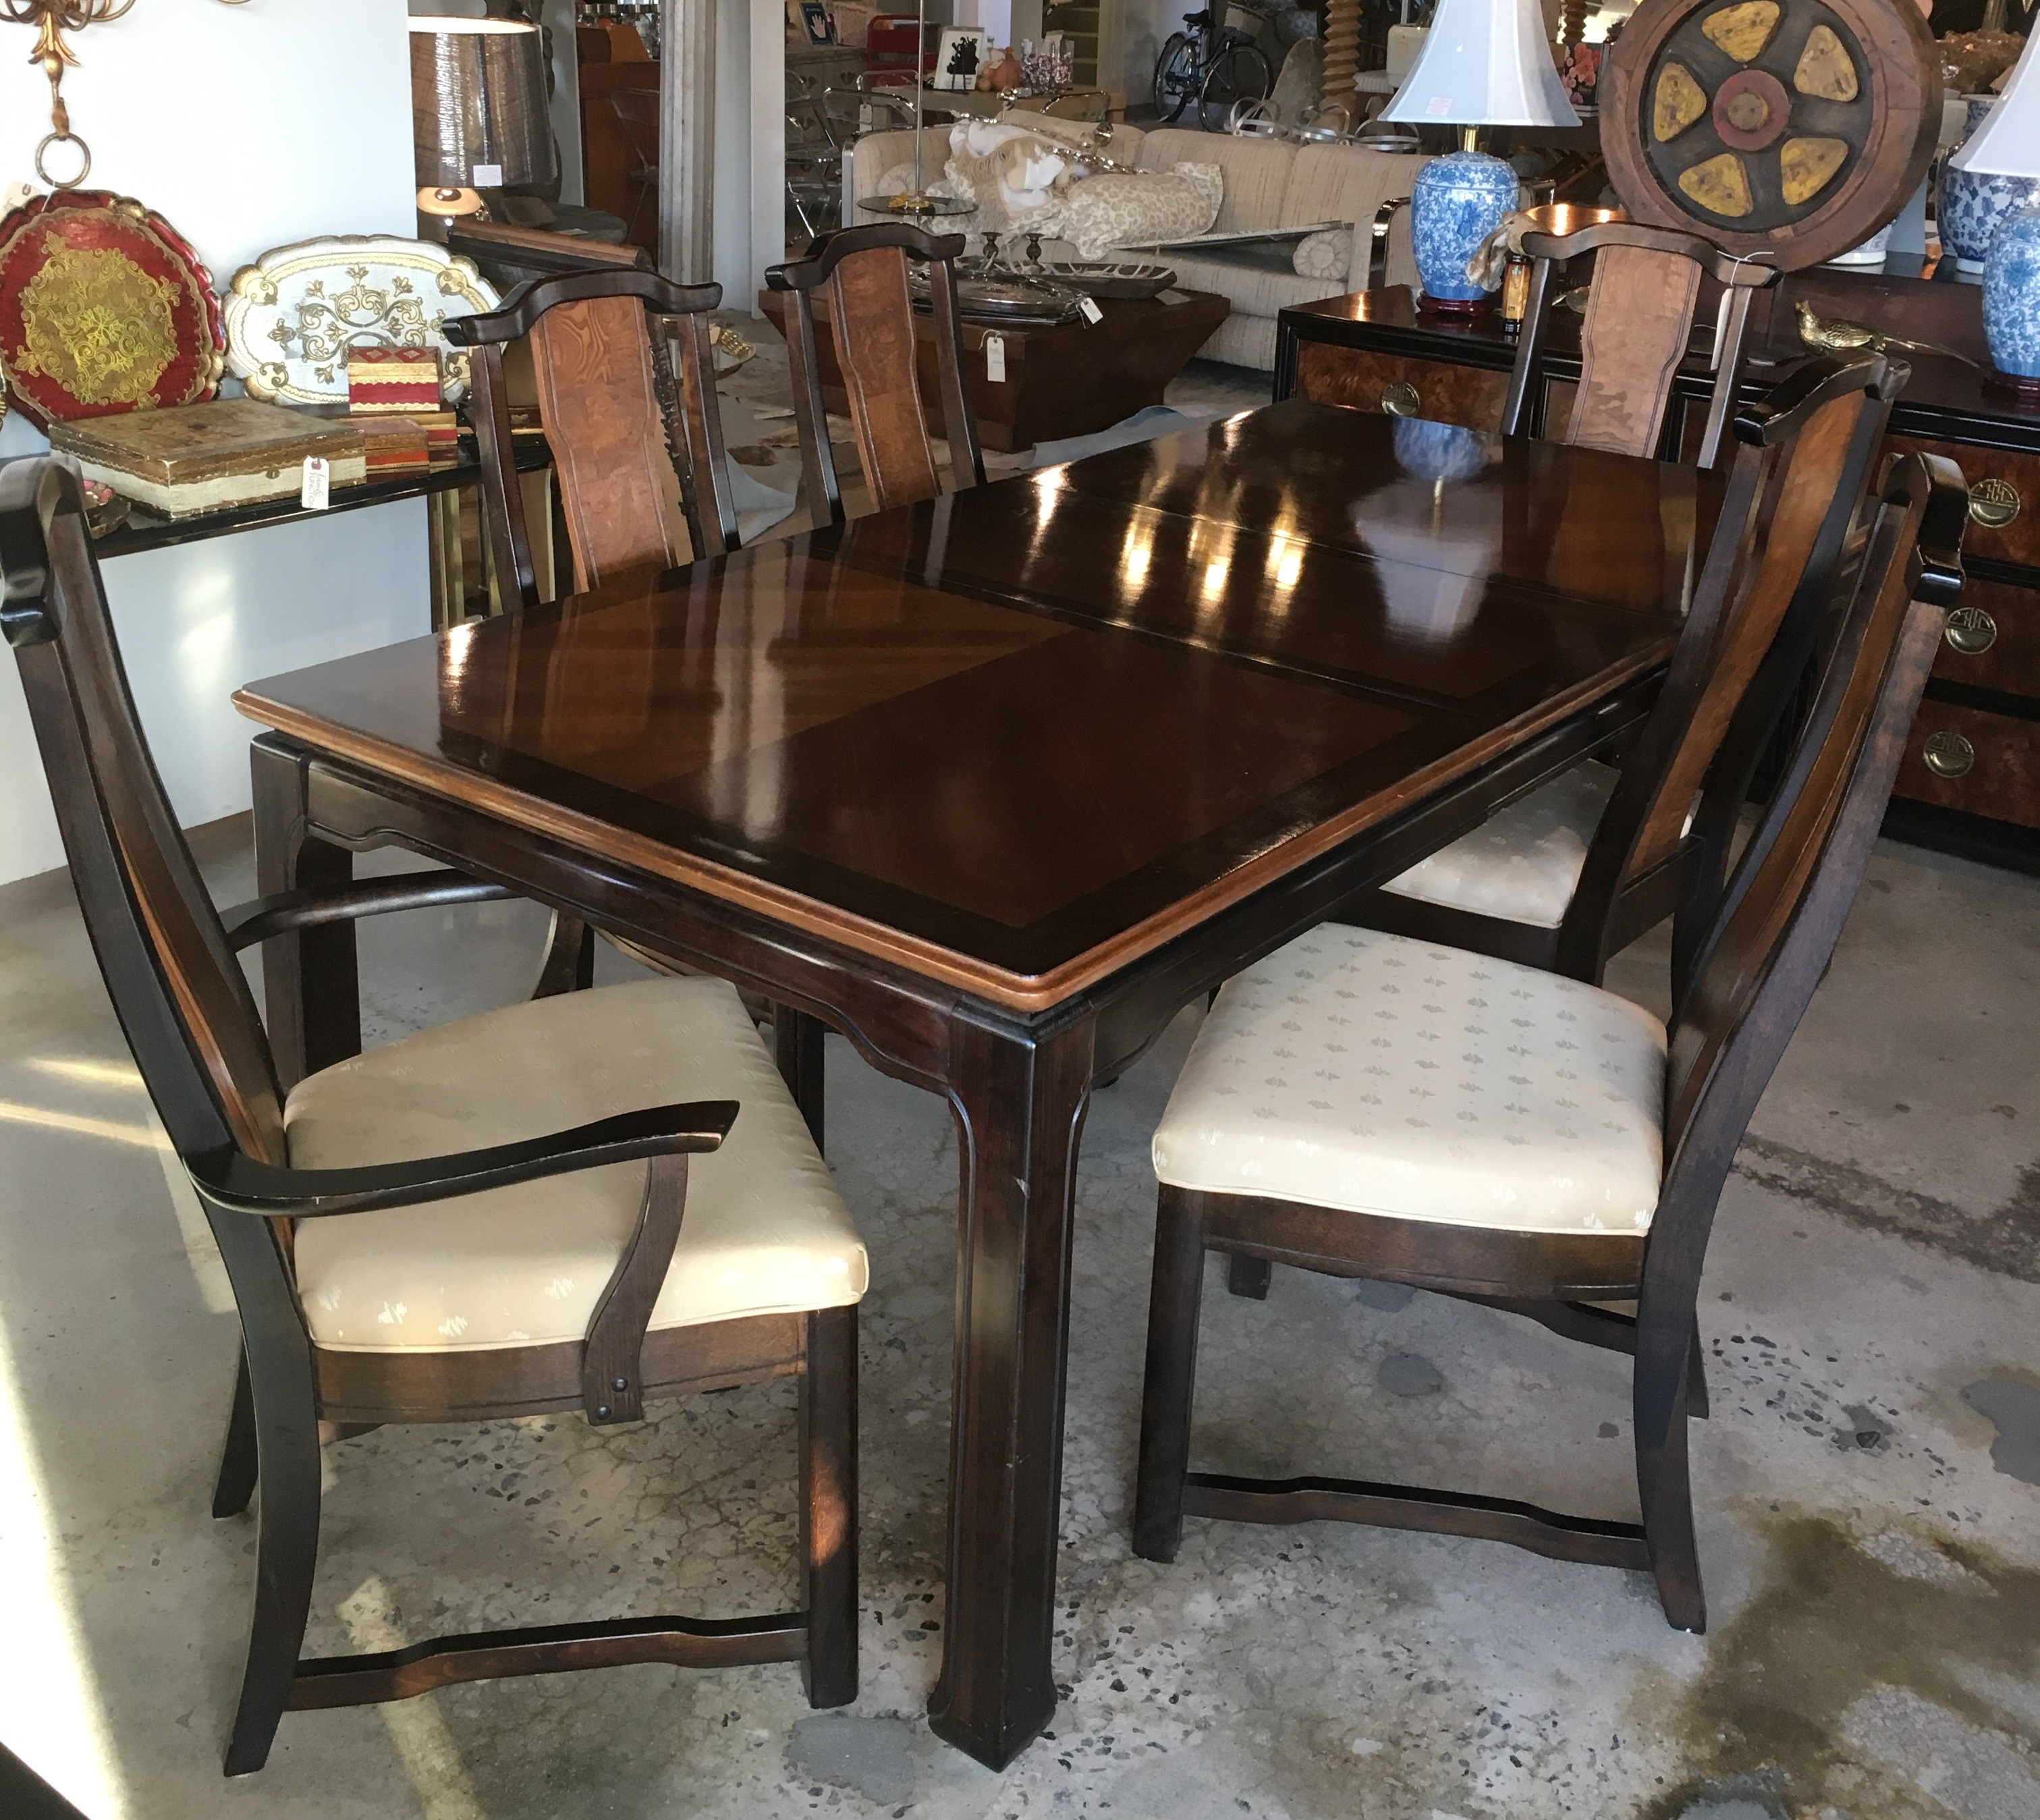 Asian Dining Table with Dining Chairs Set - Form & Function